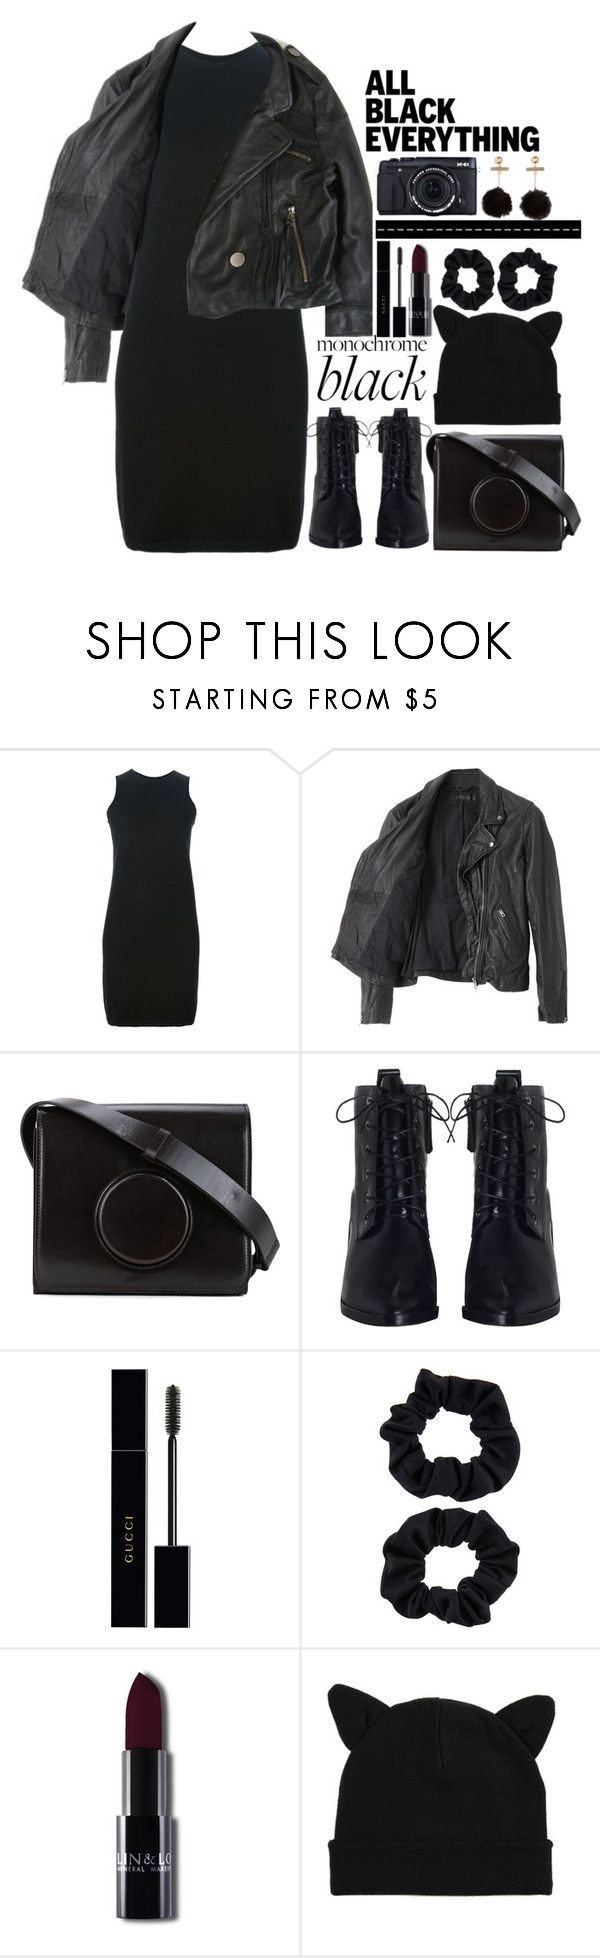 """""""Biker Girl"""" by lilitha-thando ❤ liked on Polyvore featuring Rick Owens, American Rag Cie, Lemaire, Zimmermann, Gucci, Accessorize, Hot Topic and Fujifilm"""